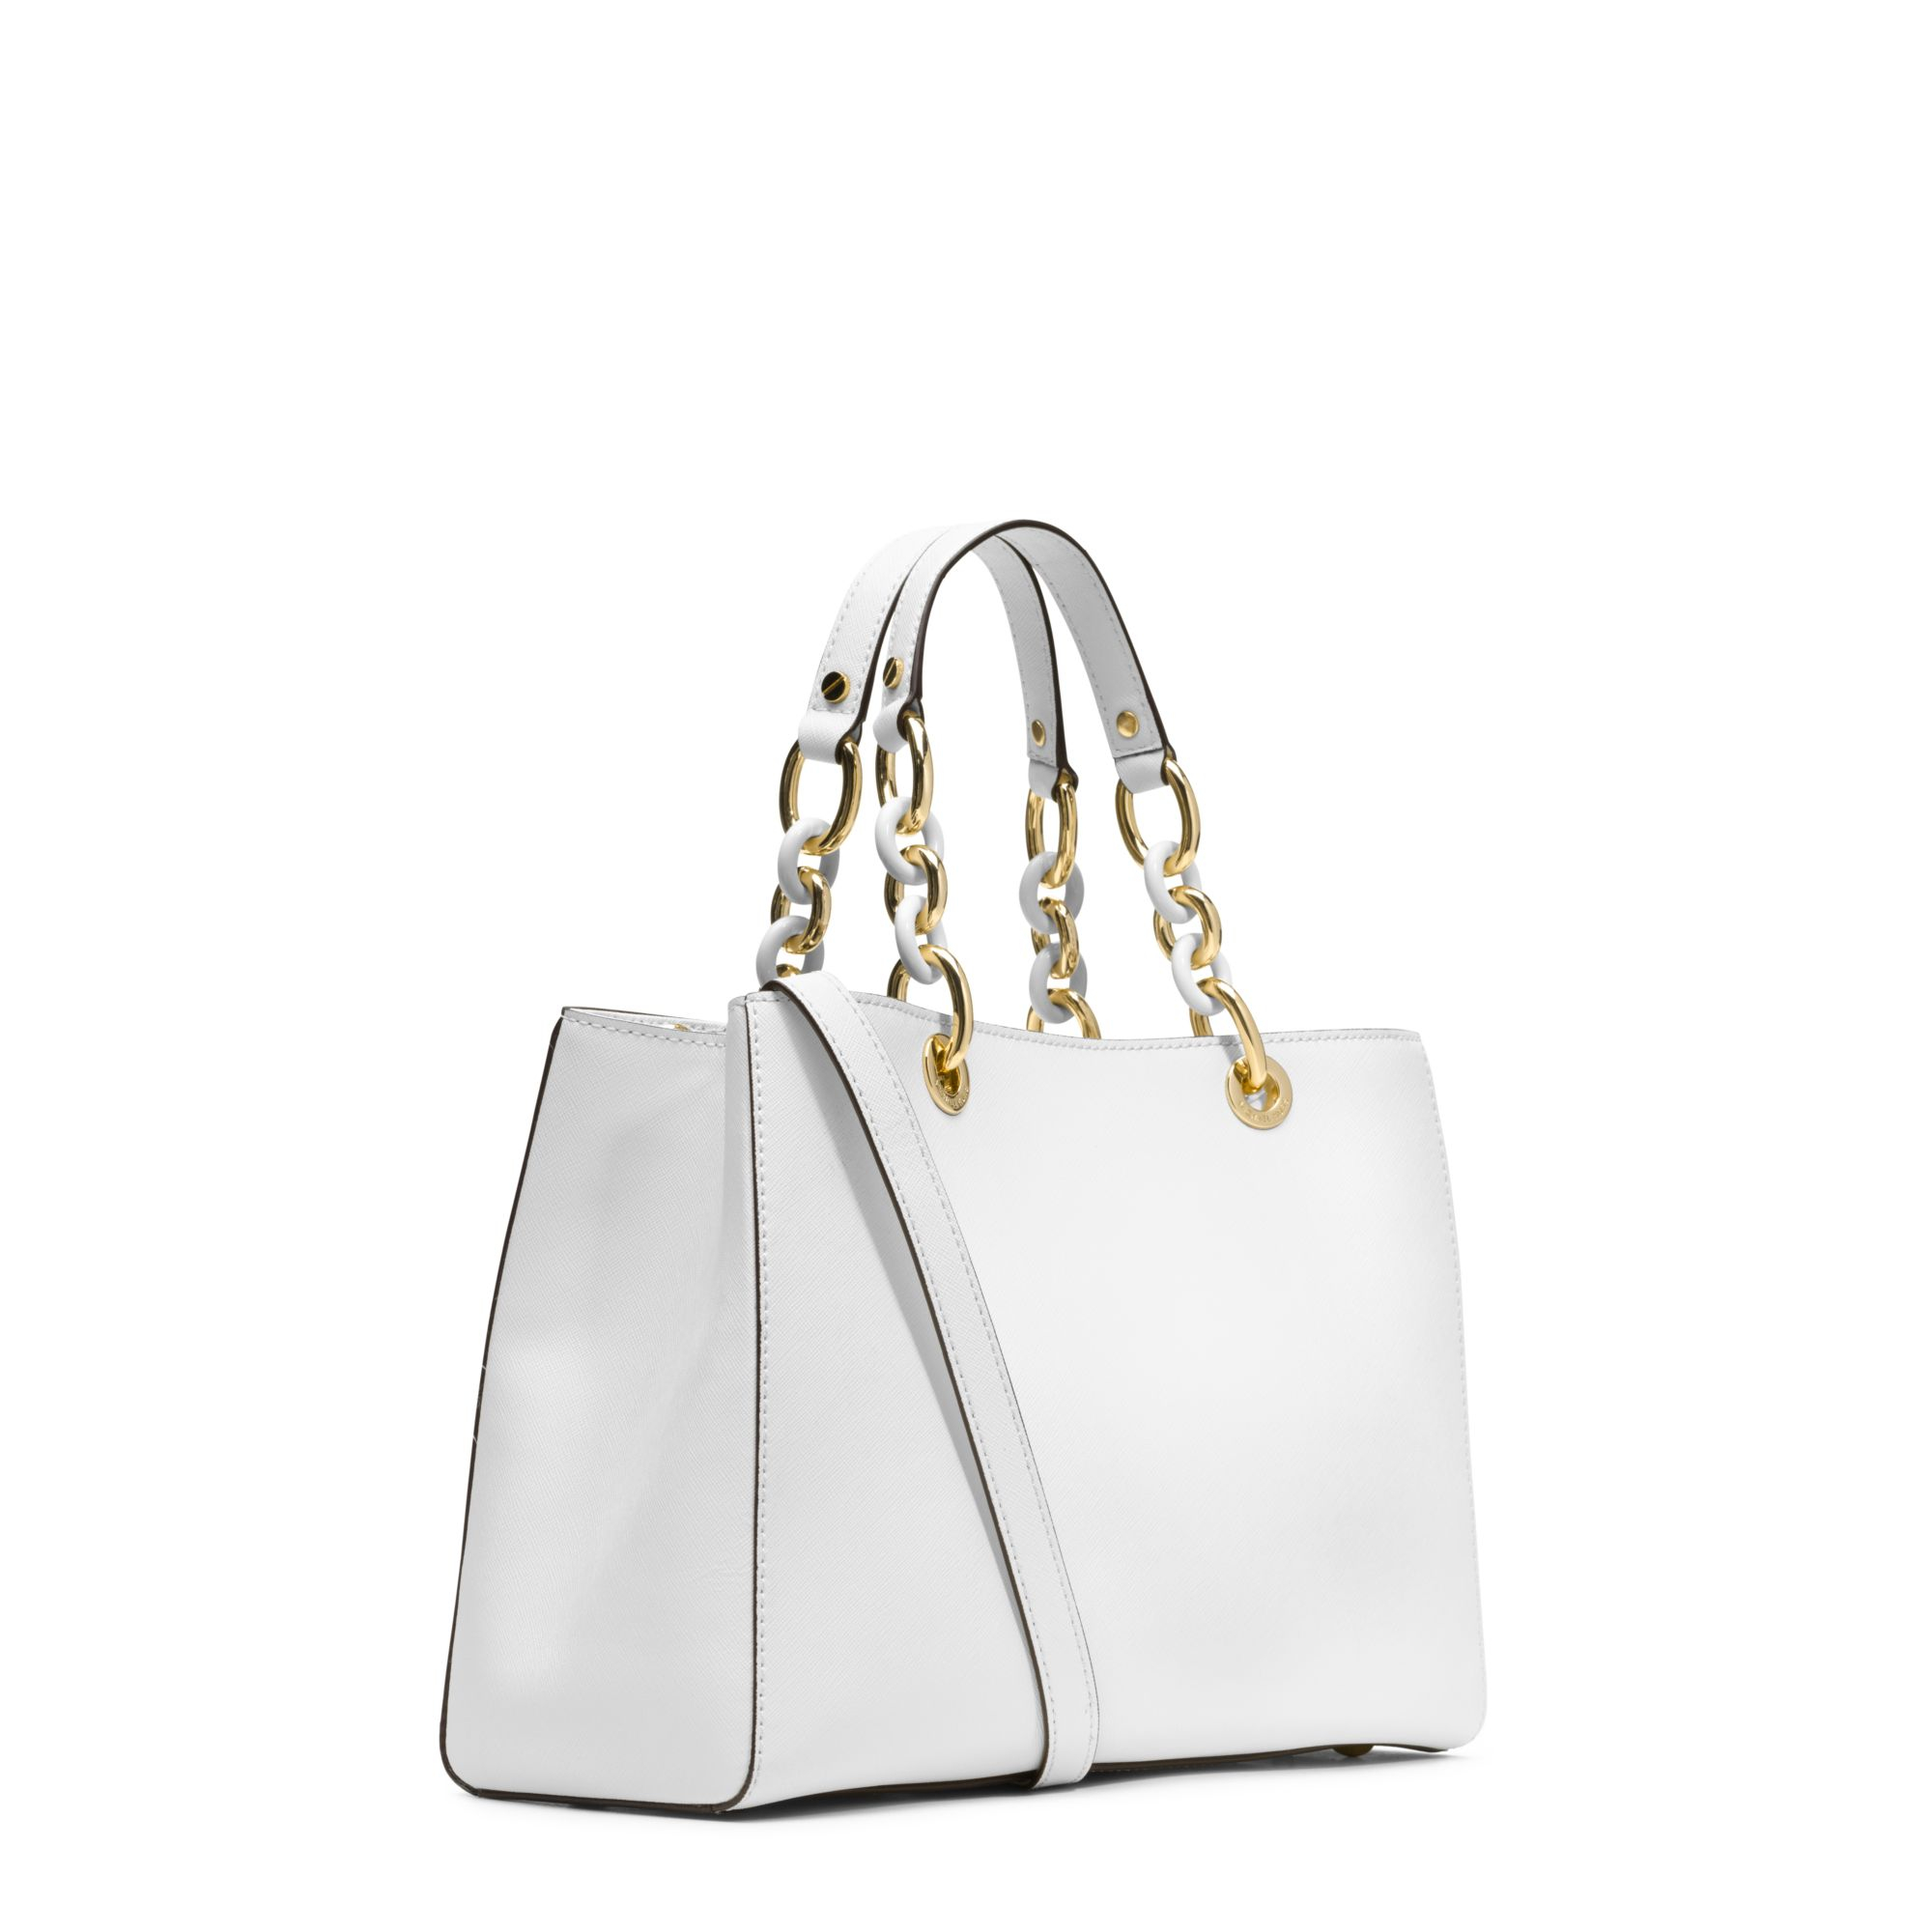 52cf38c32b5d ... 50% off lyst michael kors cynthia medium leather satchel in white 6be18  e6c27